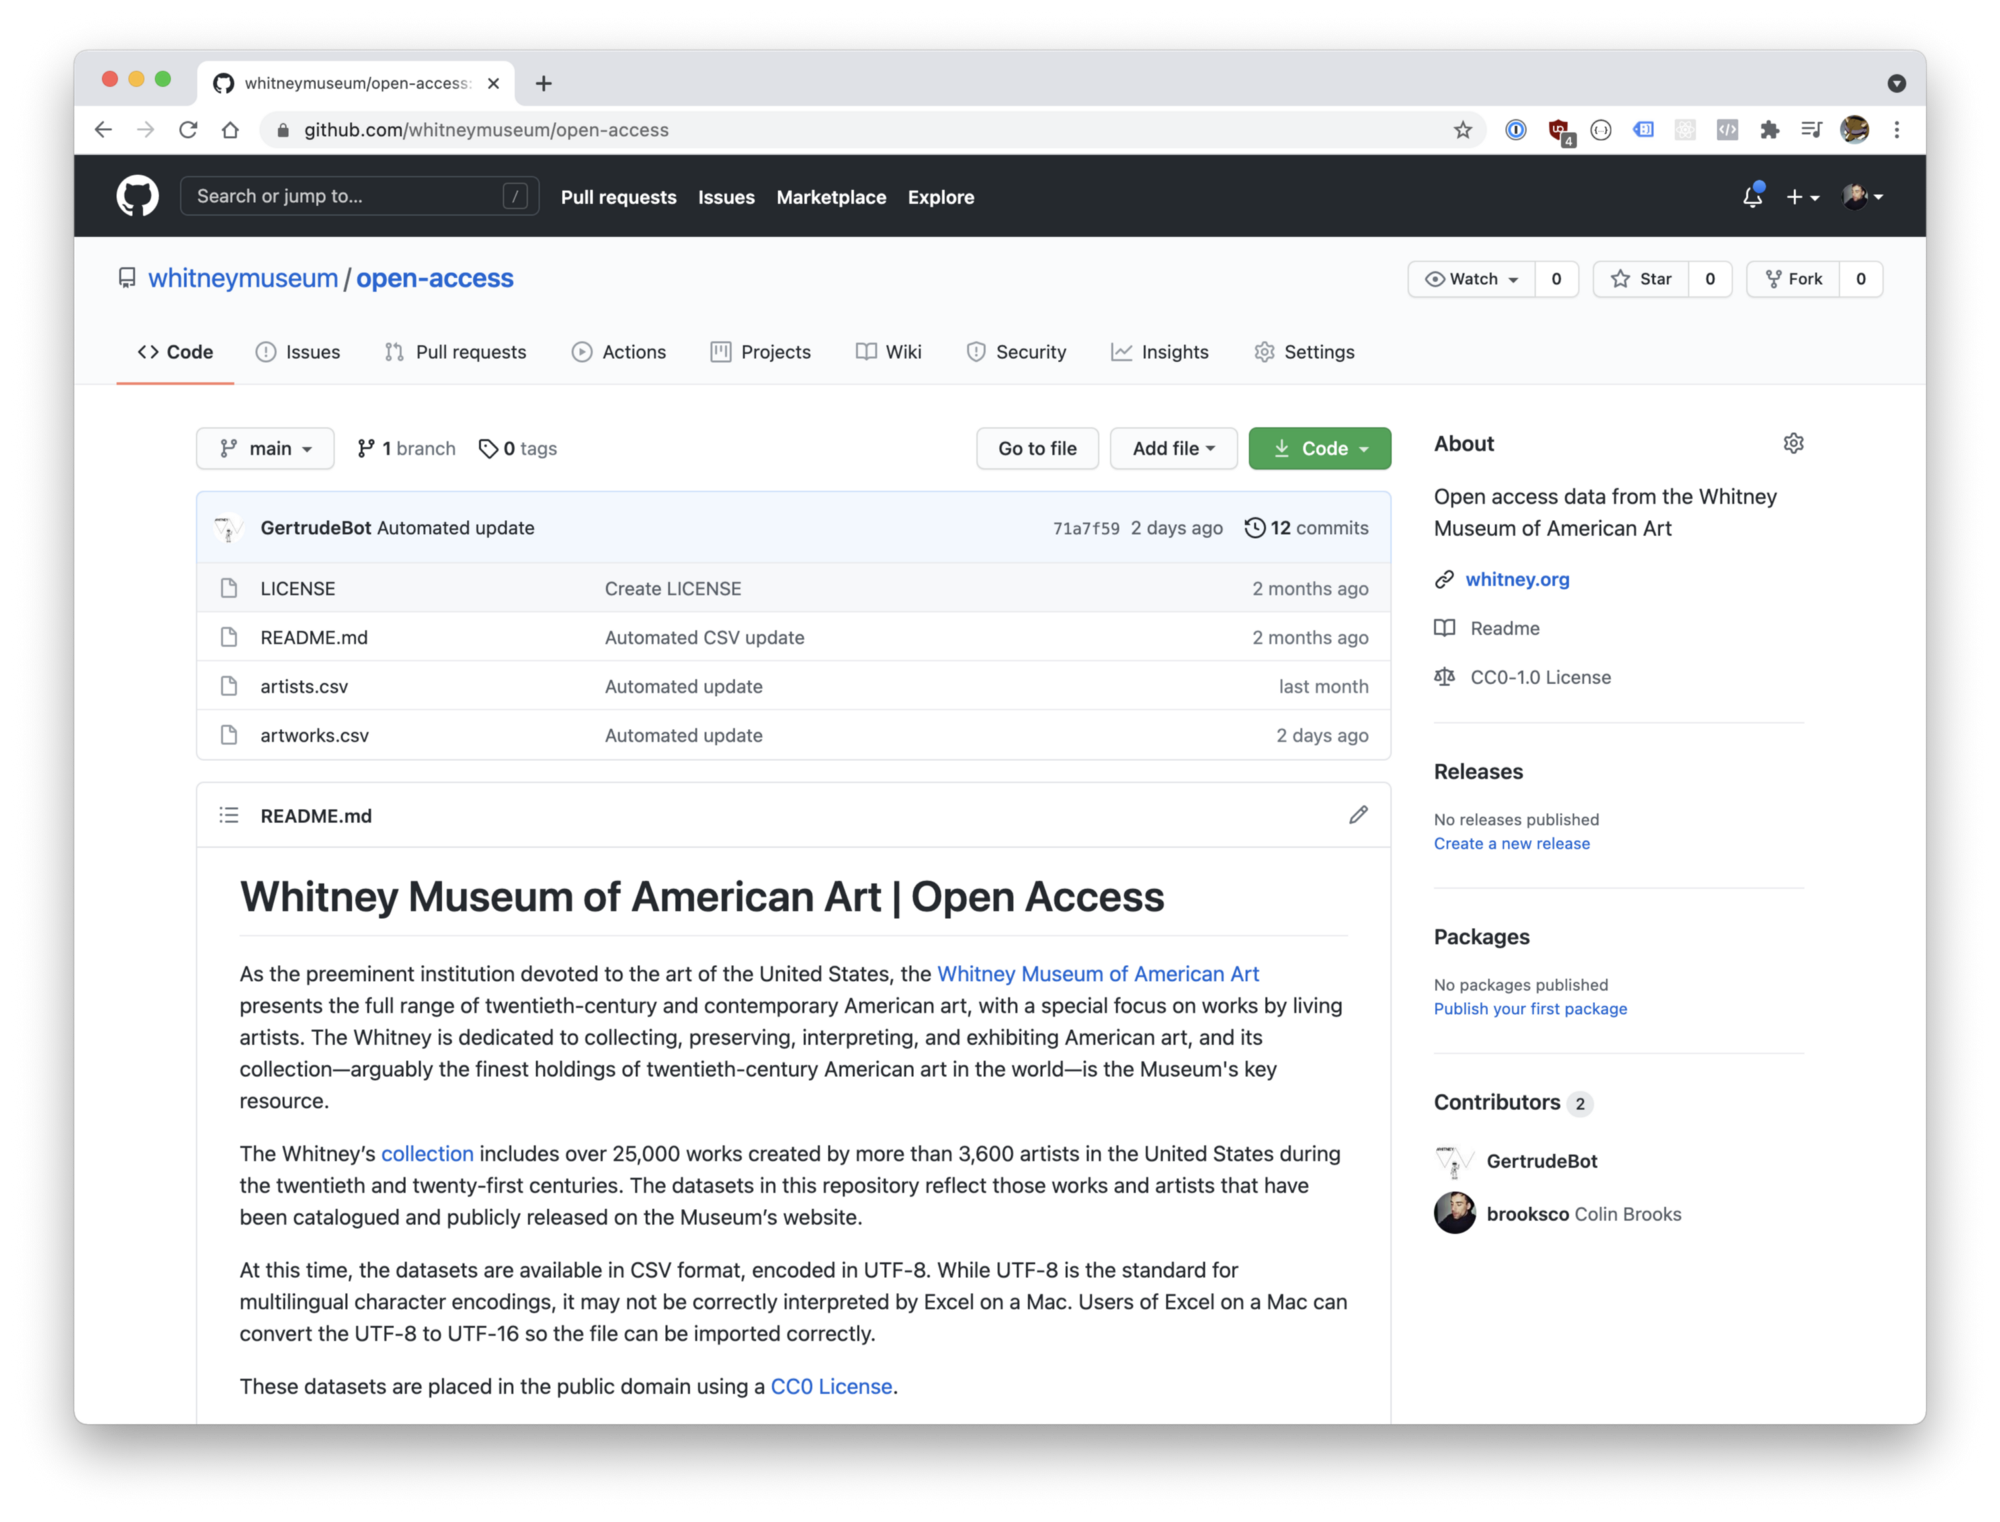 Screenshot of GitHub webpage showing the files and description of the open access content released by the museum